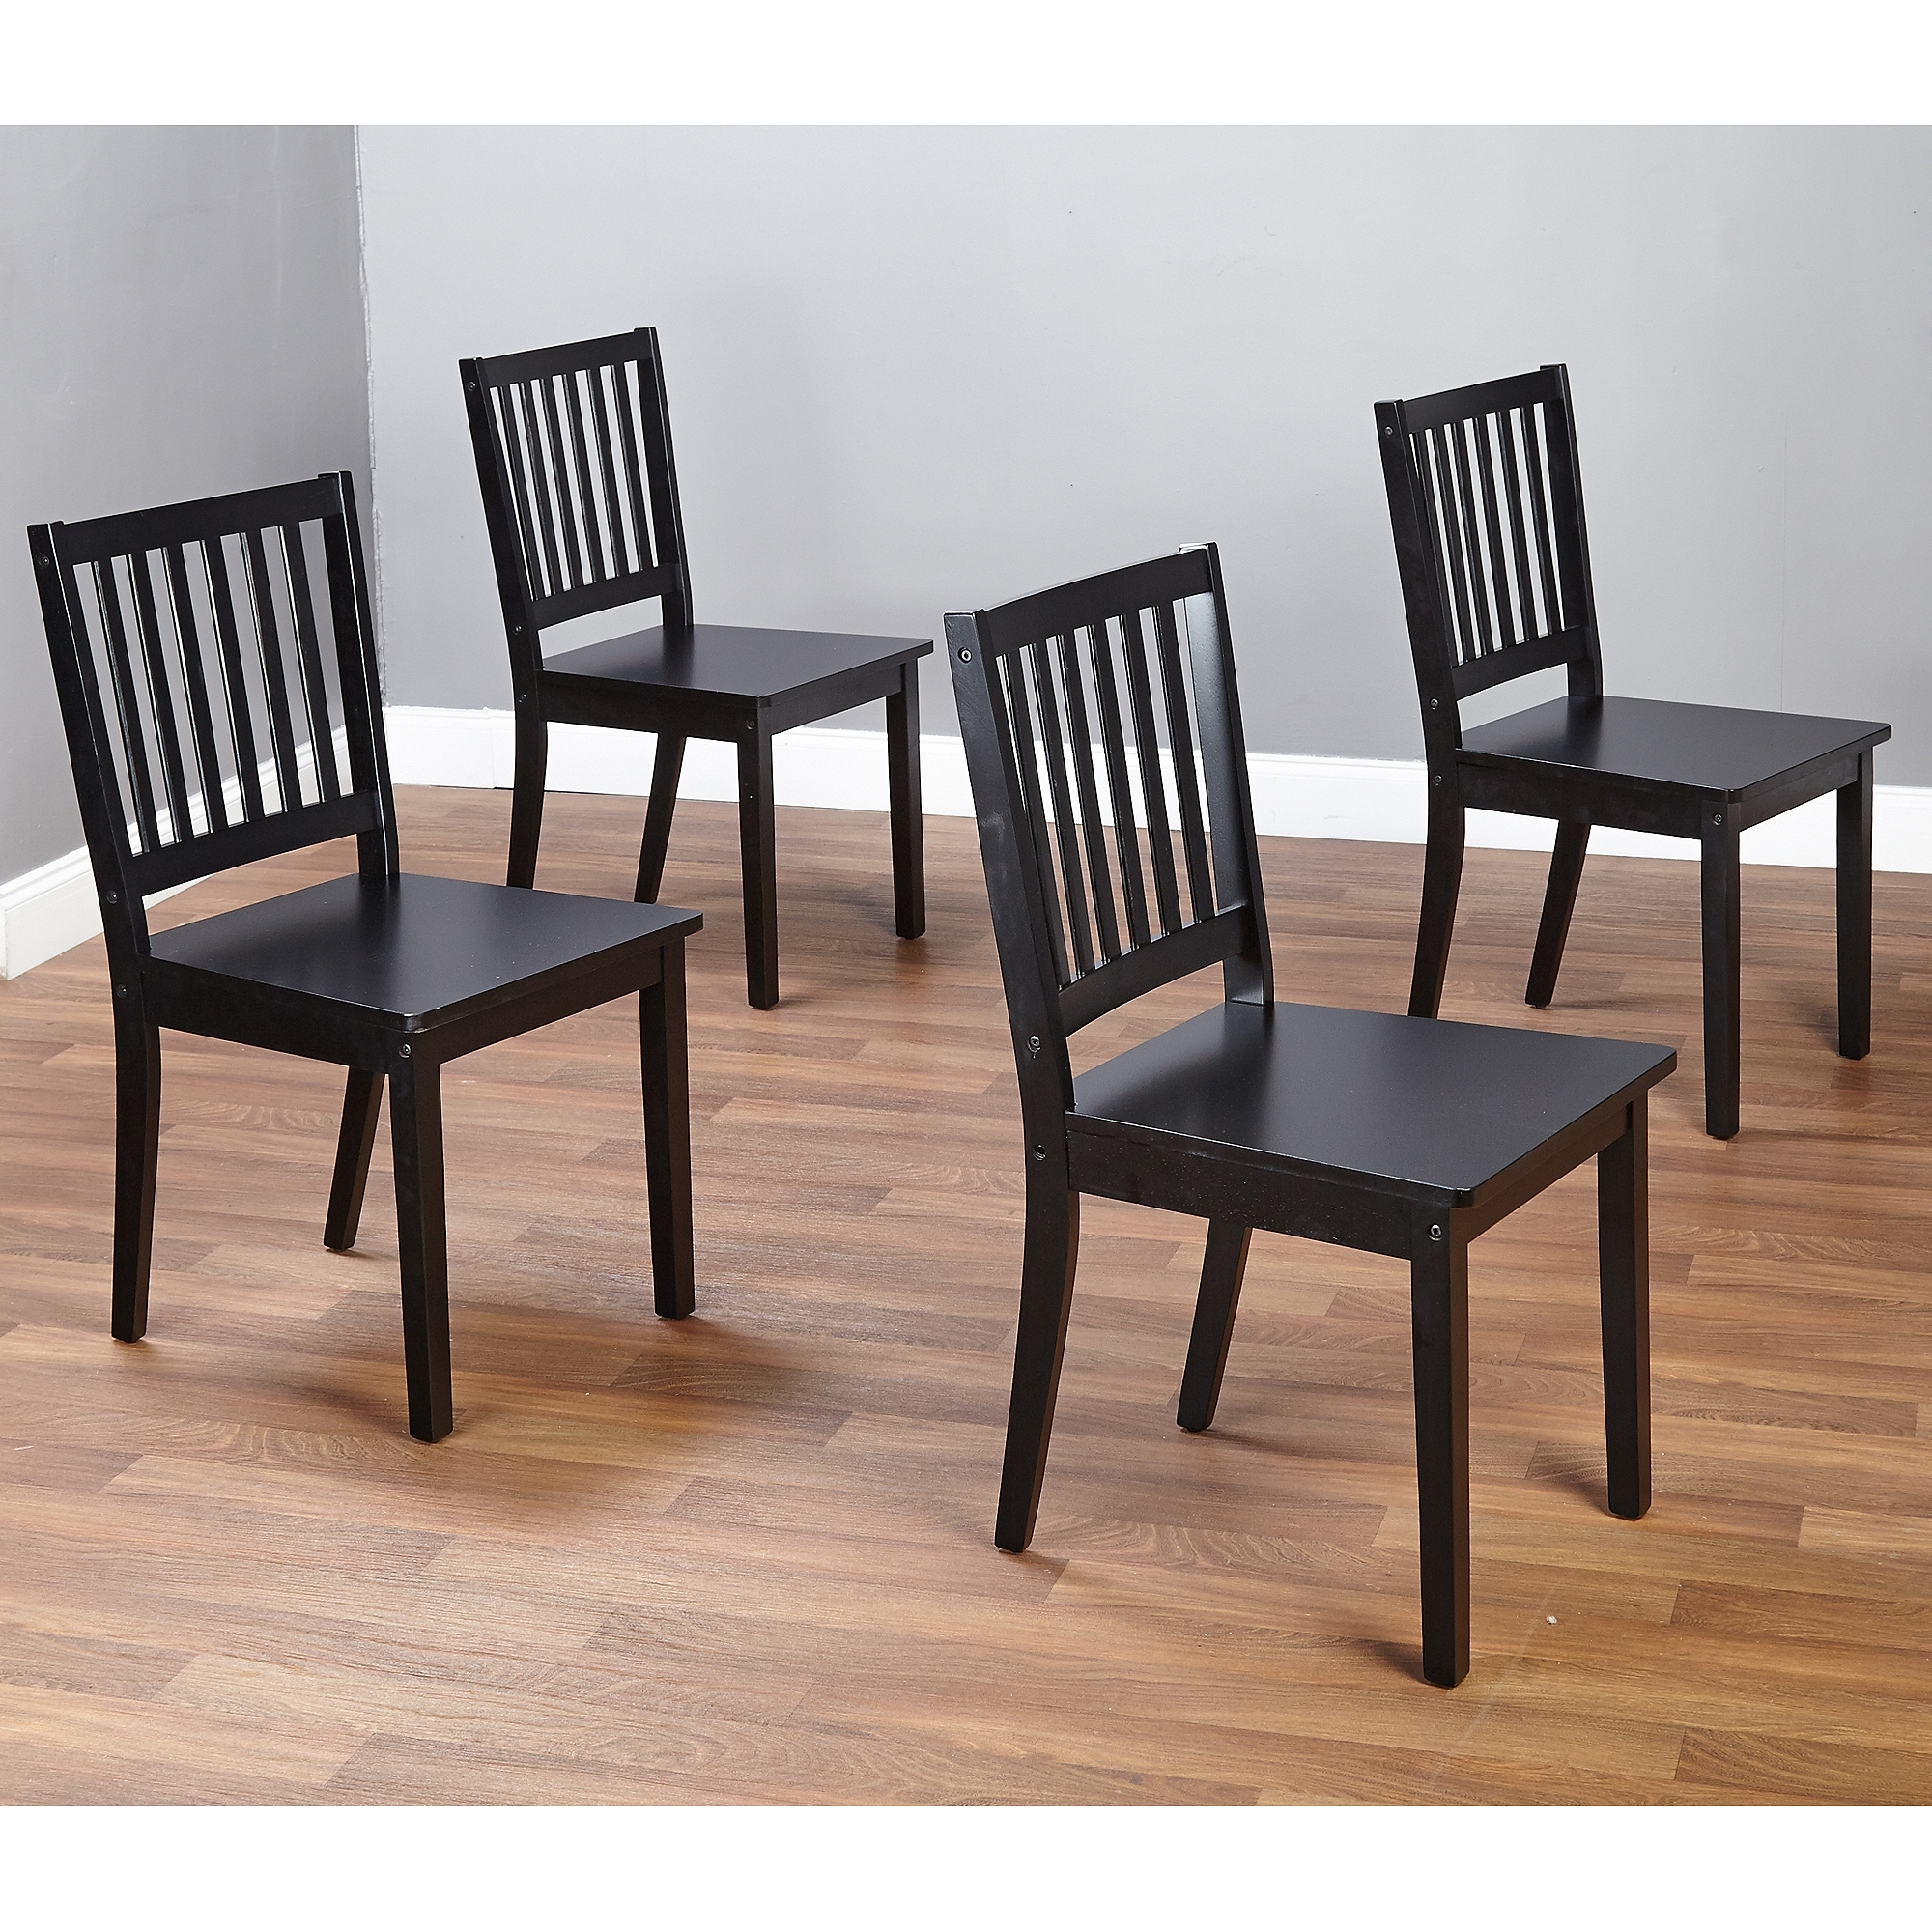 Most Recent Shaker Dining Chairs, Set Of 4, Espresso – Walmart Pertaining To Wooden Dining Sets (View 14 of 25)